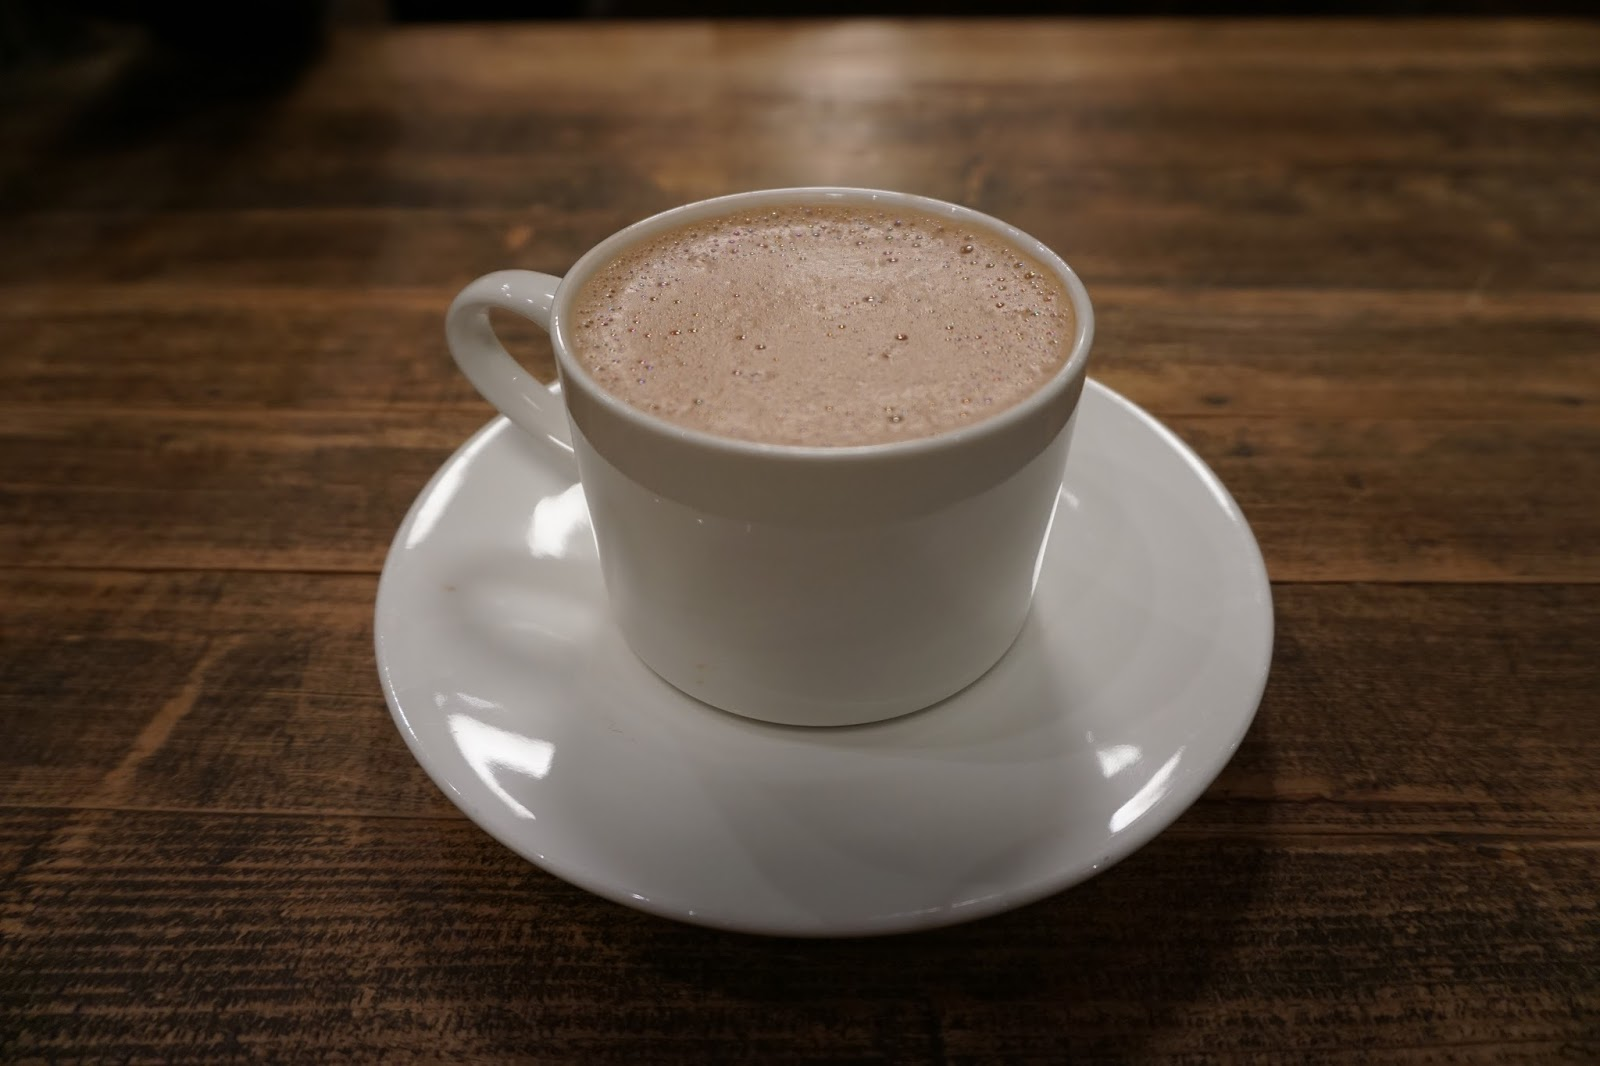 hot chocolate, the coffee shop